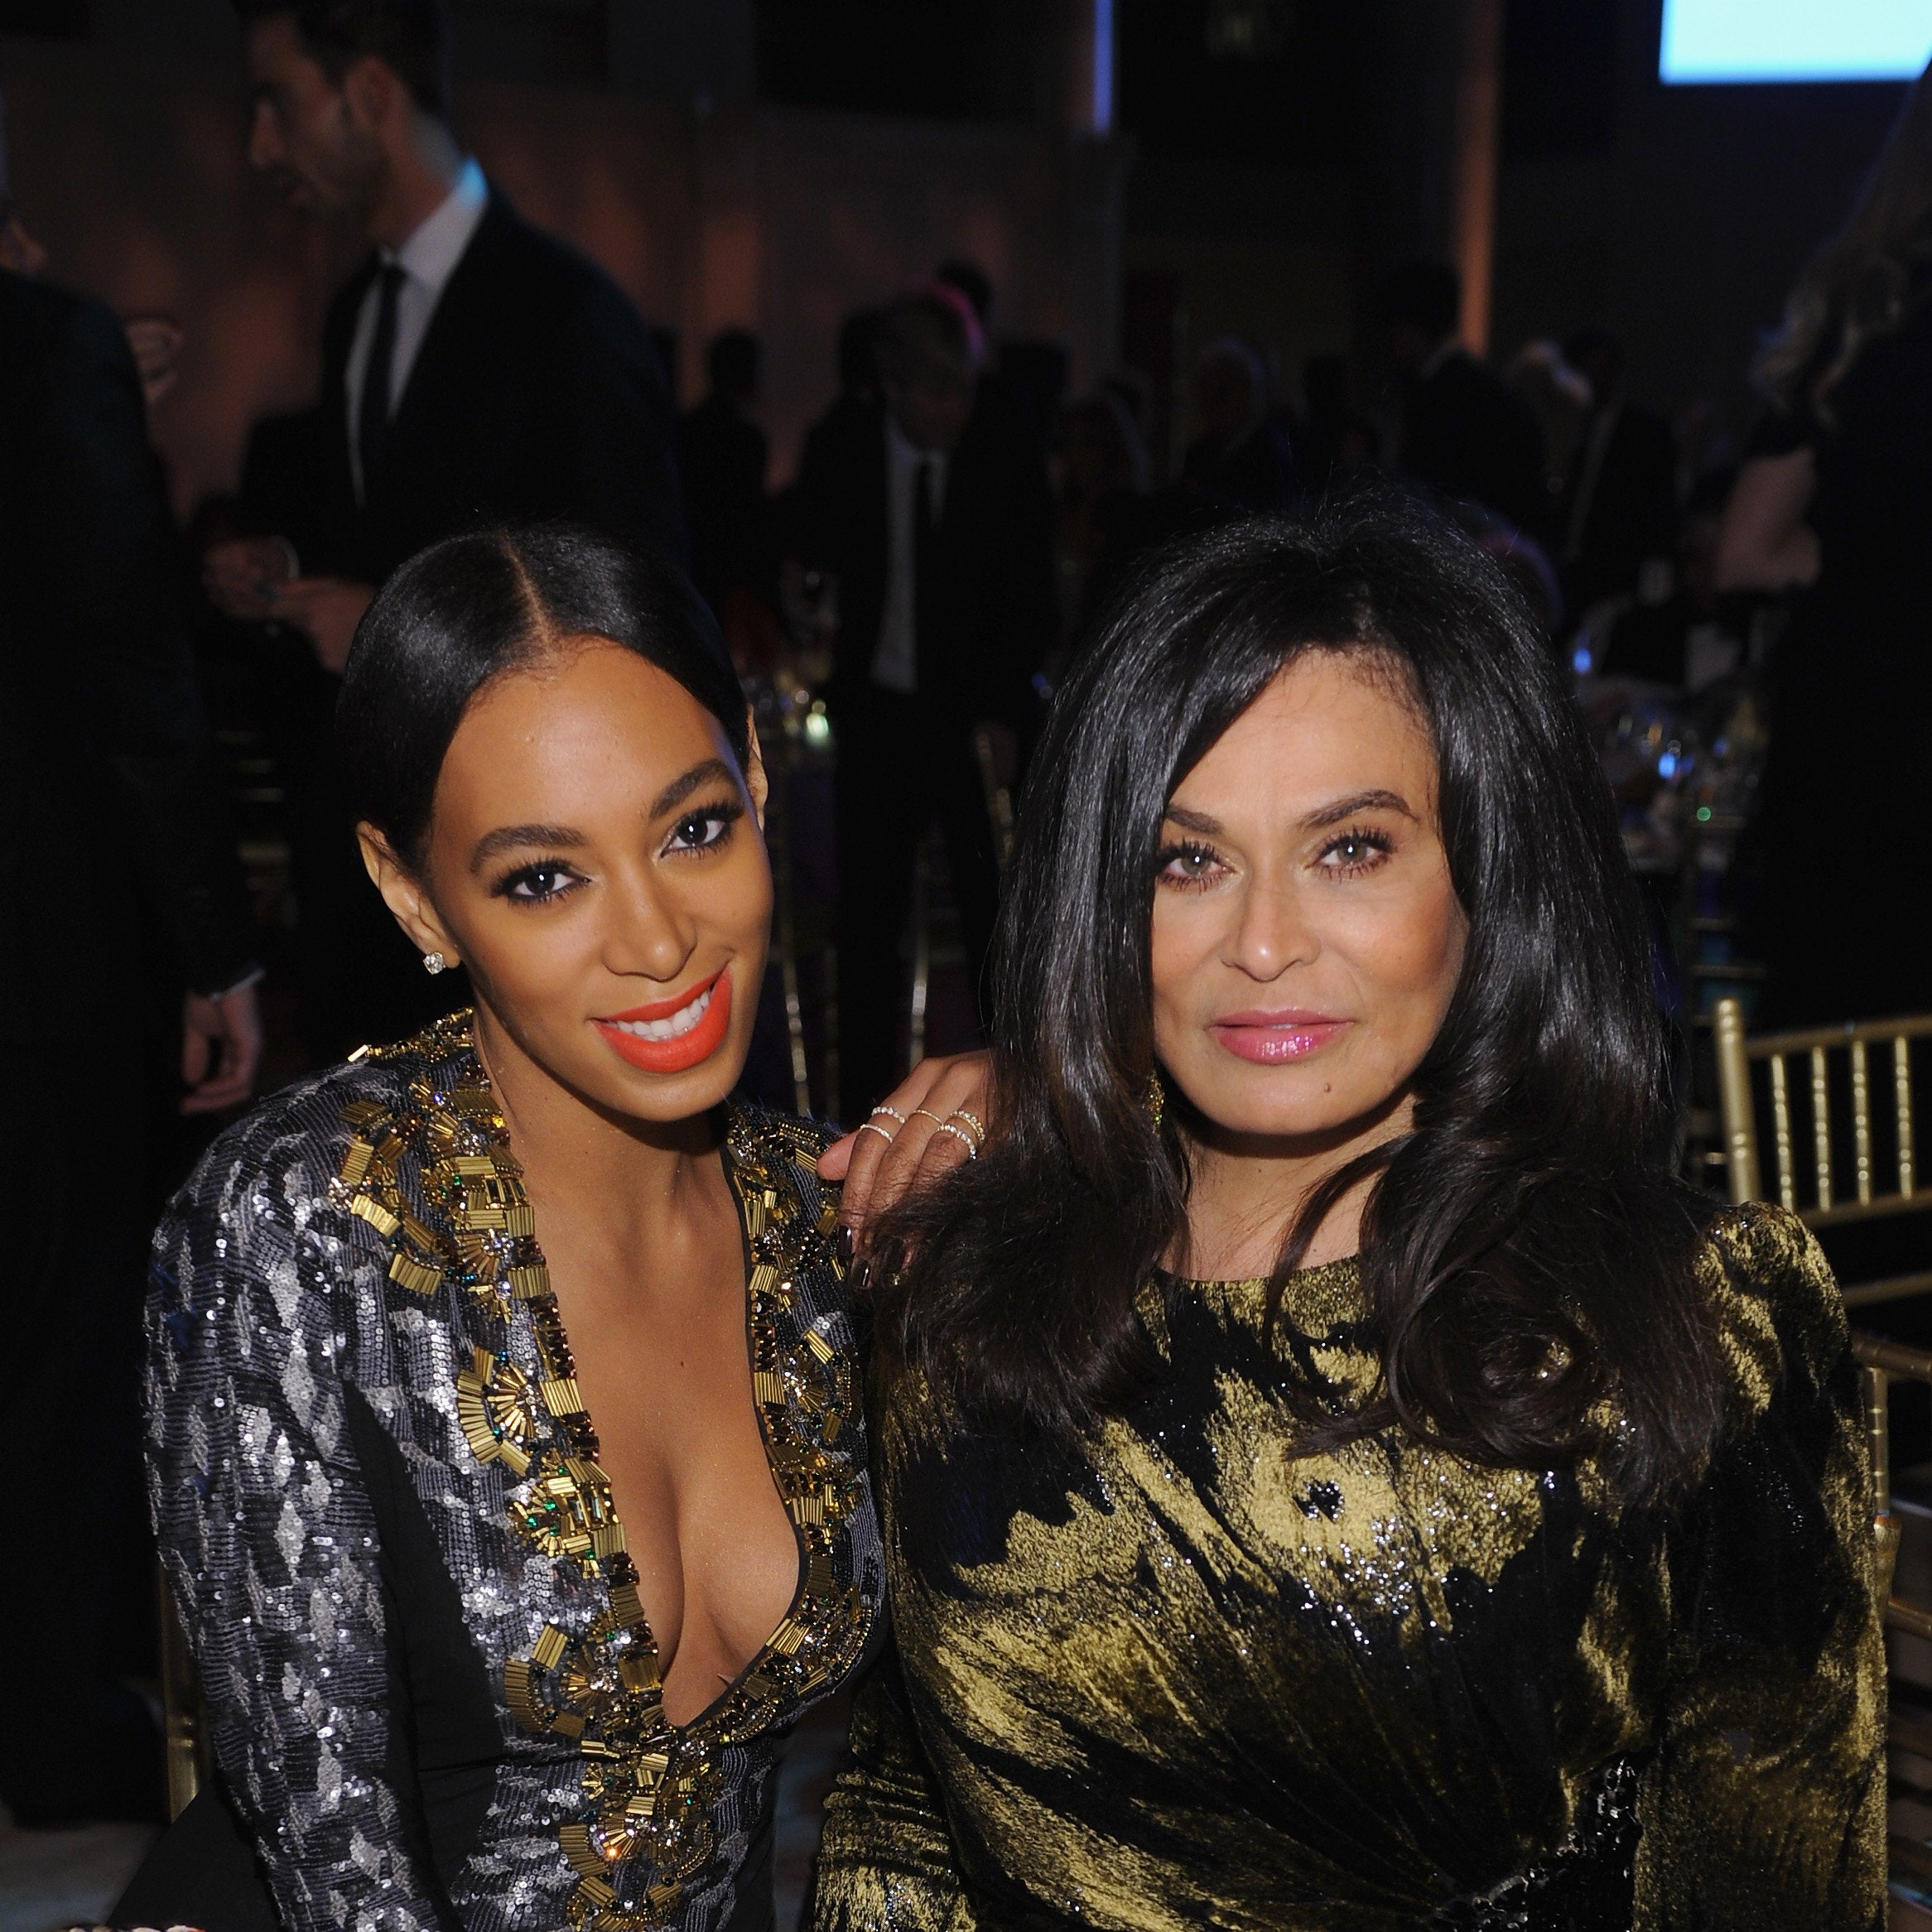 Proud Mom Tina Lawson Pays Tribute To Solange And Shares Sweet Message About SNL Performance